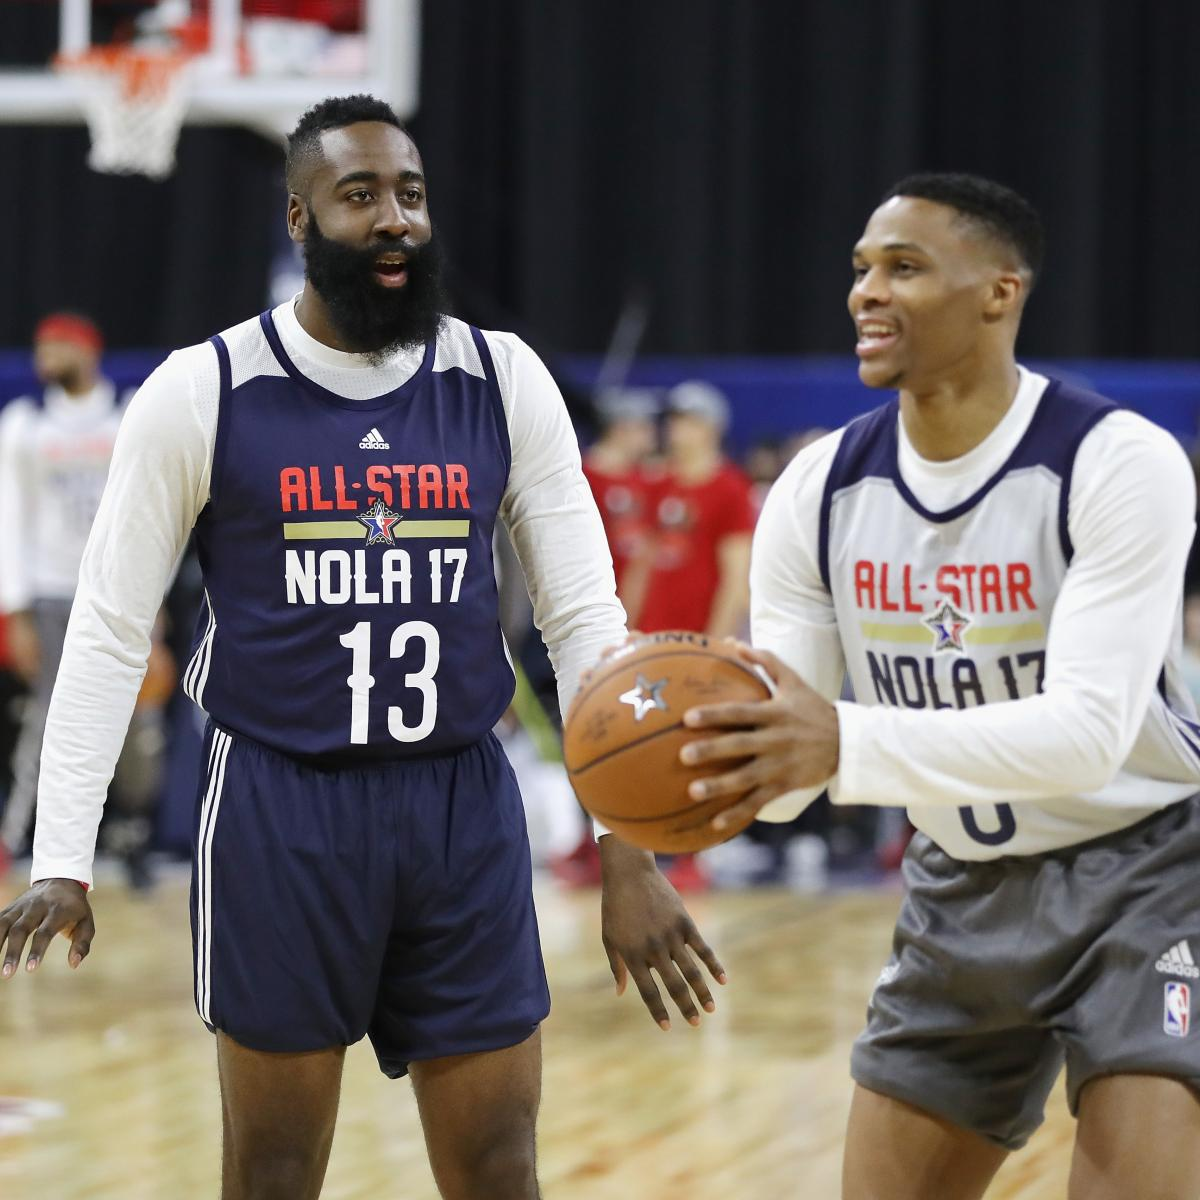 James Harden Total Points: NBA MVP Voting Results: Russell Westbrook Wins By 135